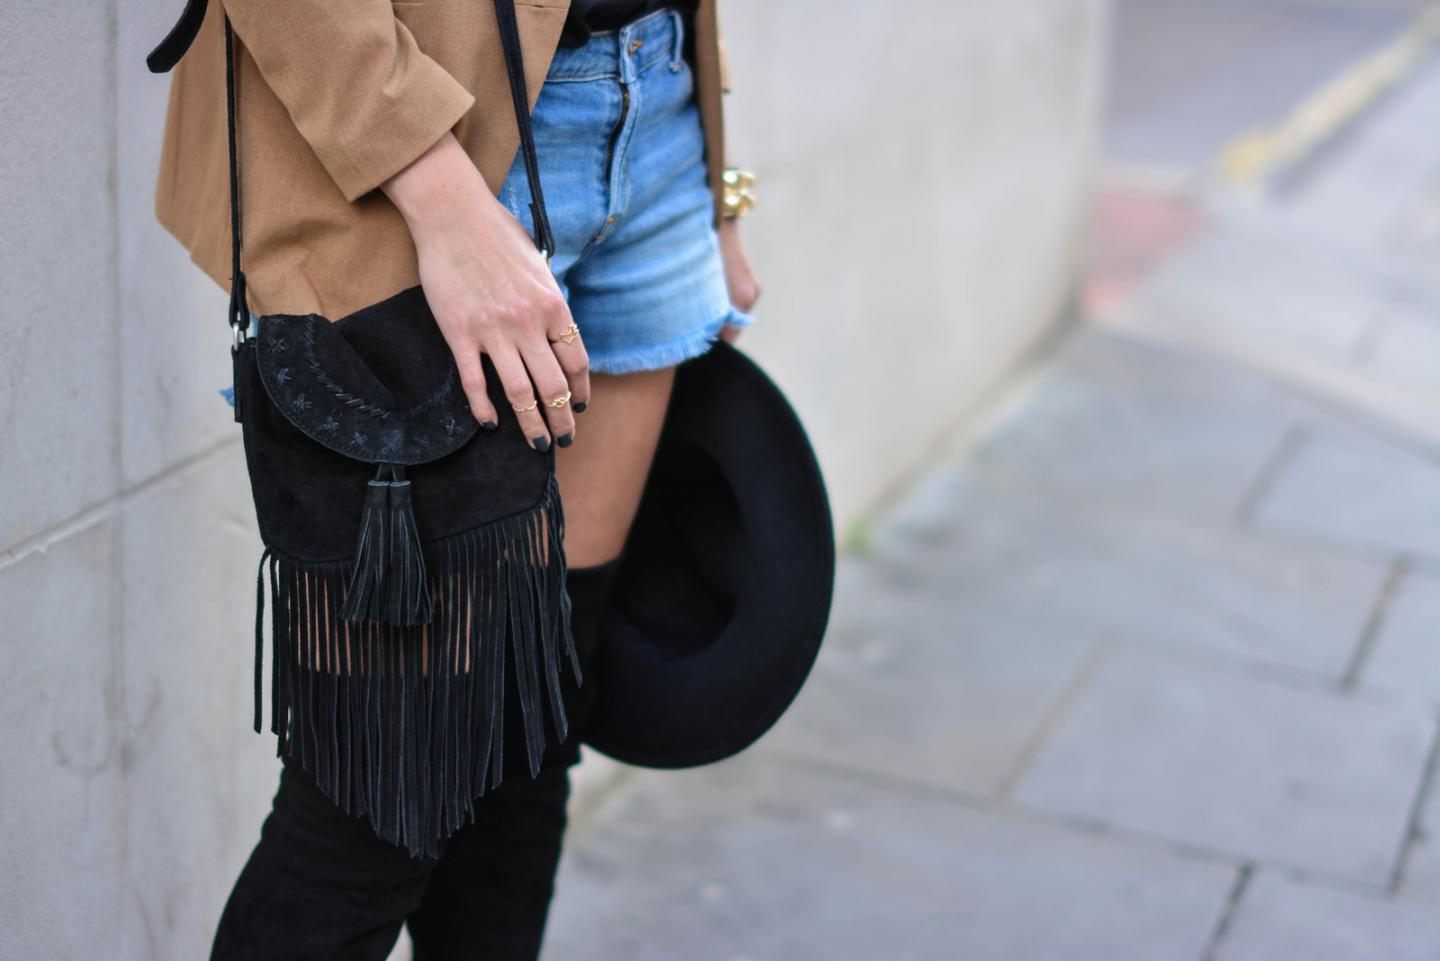 EJSTYLE - Emma Hill wearing Camel blazer, black suede thigh high OTK boots, Fedora hat, denim shorts, black suede fringe bag, gold rings